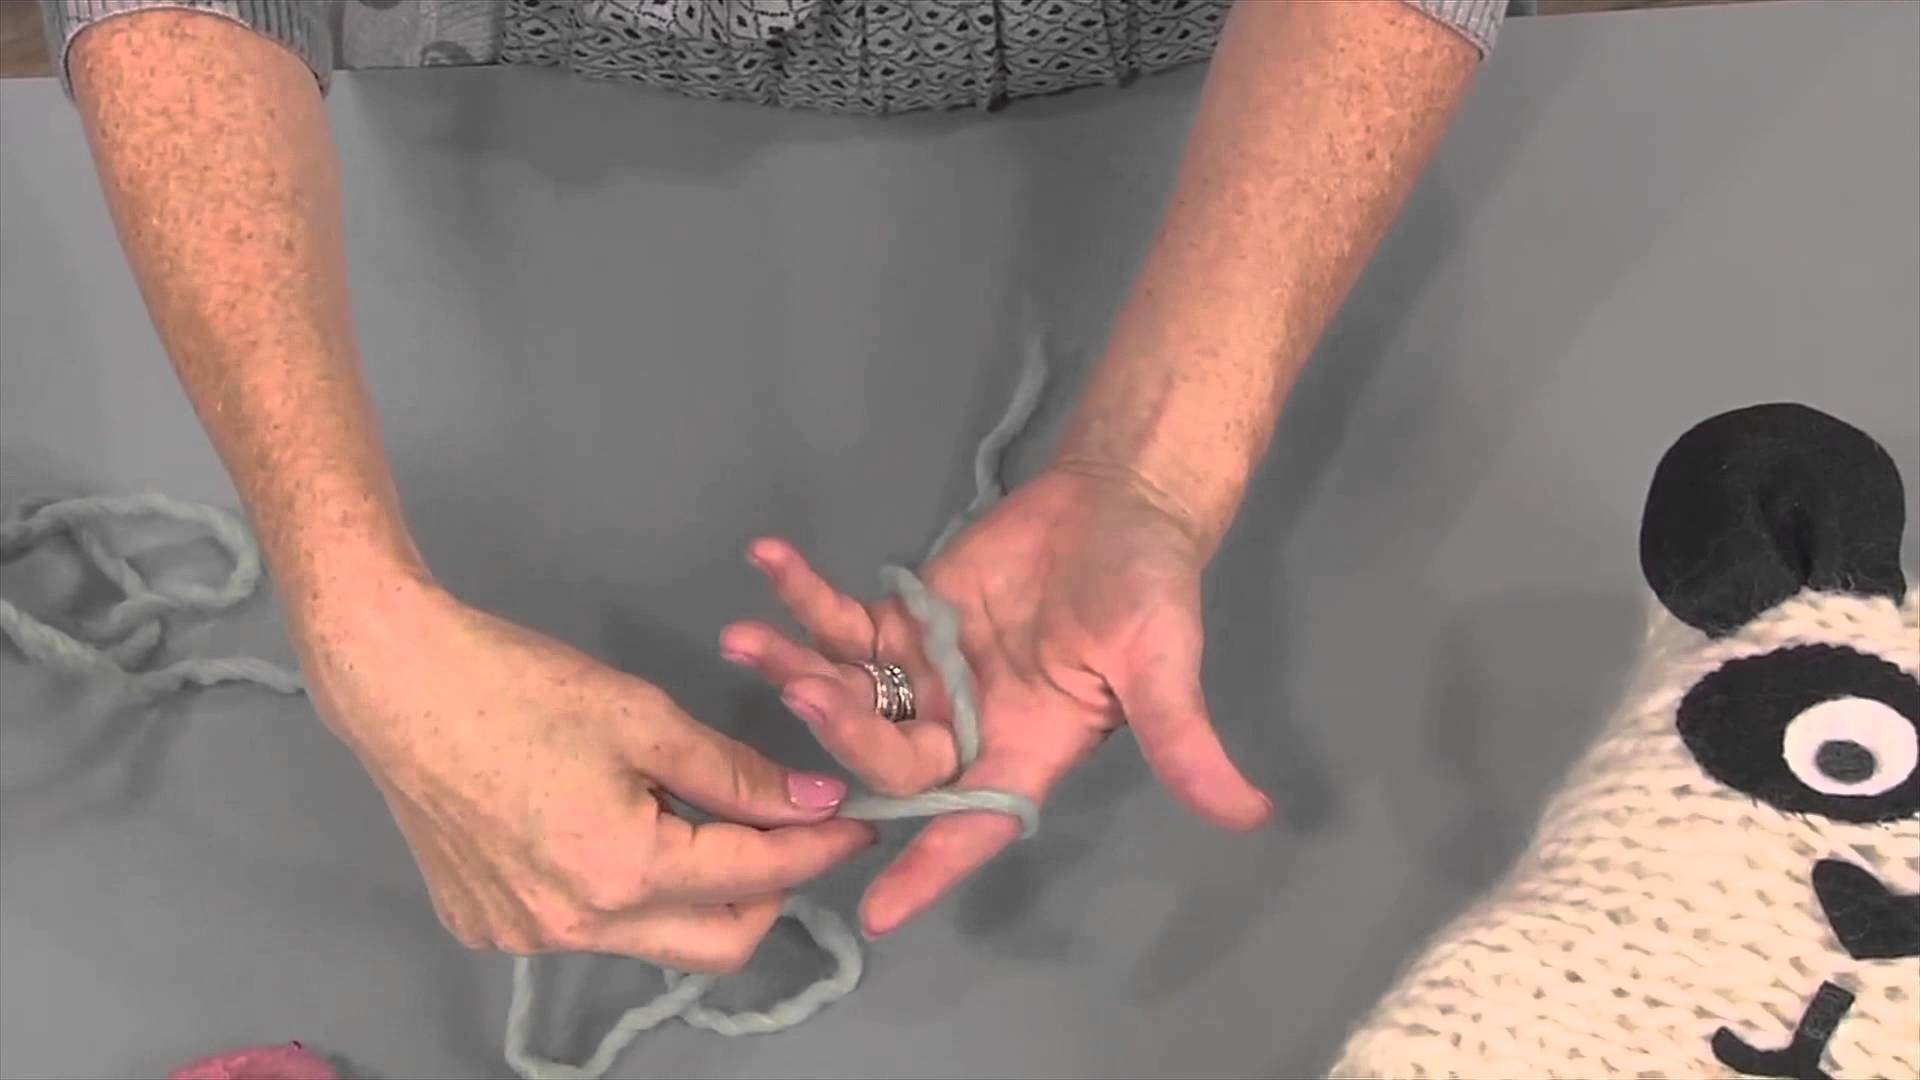 Learn Finger Knitting with Vickie Howell, from Knitting Daily TV Episode 1408